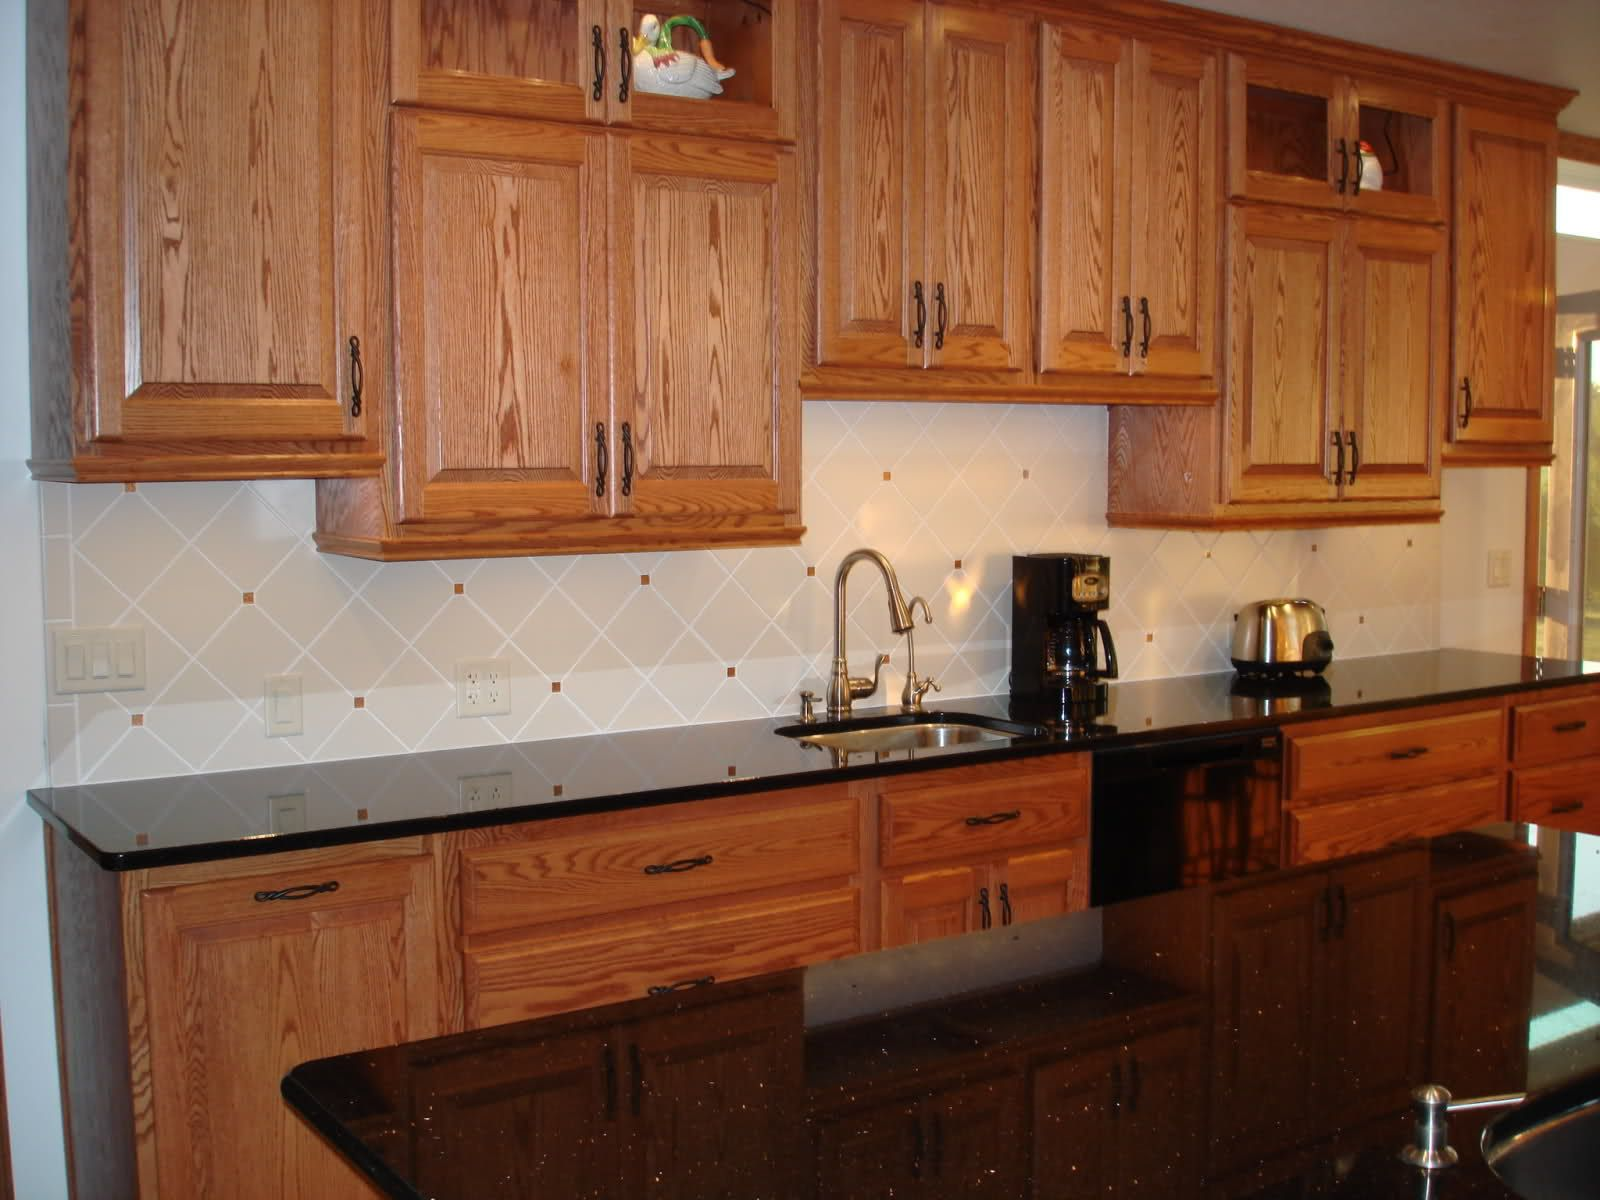 Kitchen Backsplash For Oak Cabinets backsplash pictures with oak cabinets and uba tuba granite | re